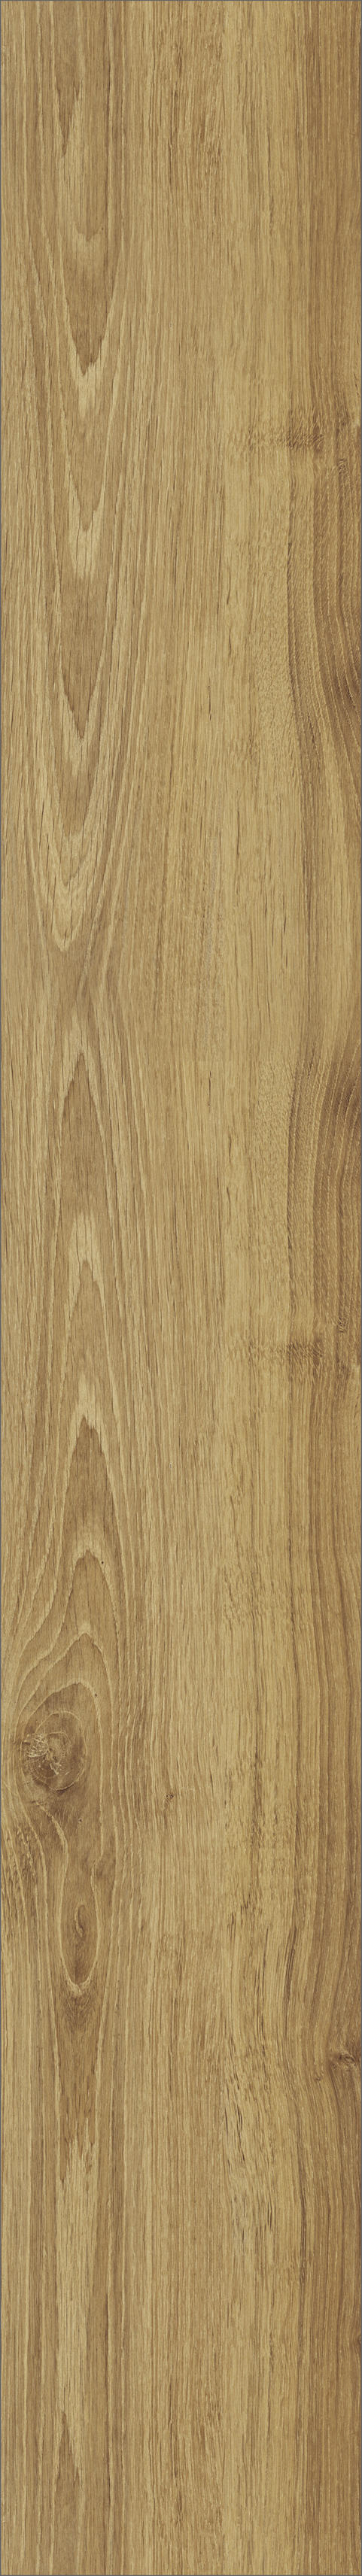 Kronotex glamour victorian oak d 4189 from kronotex for Kronotex laminate